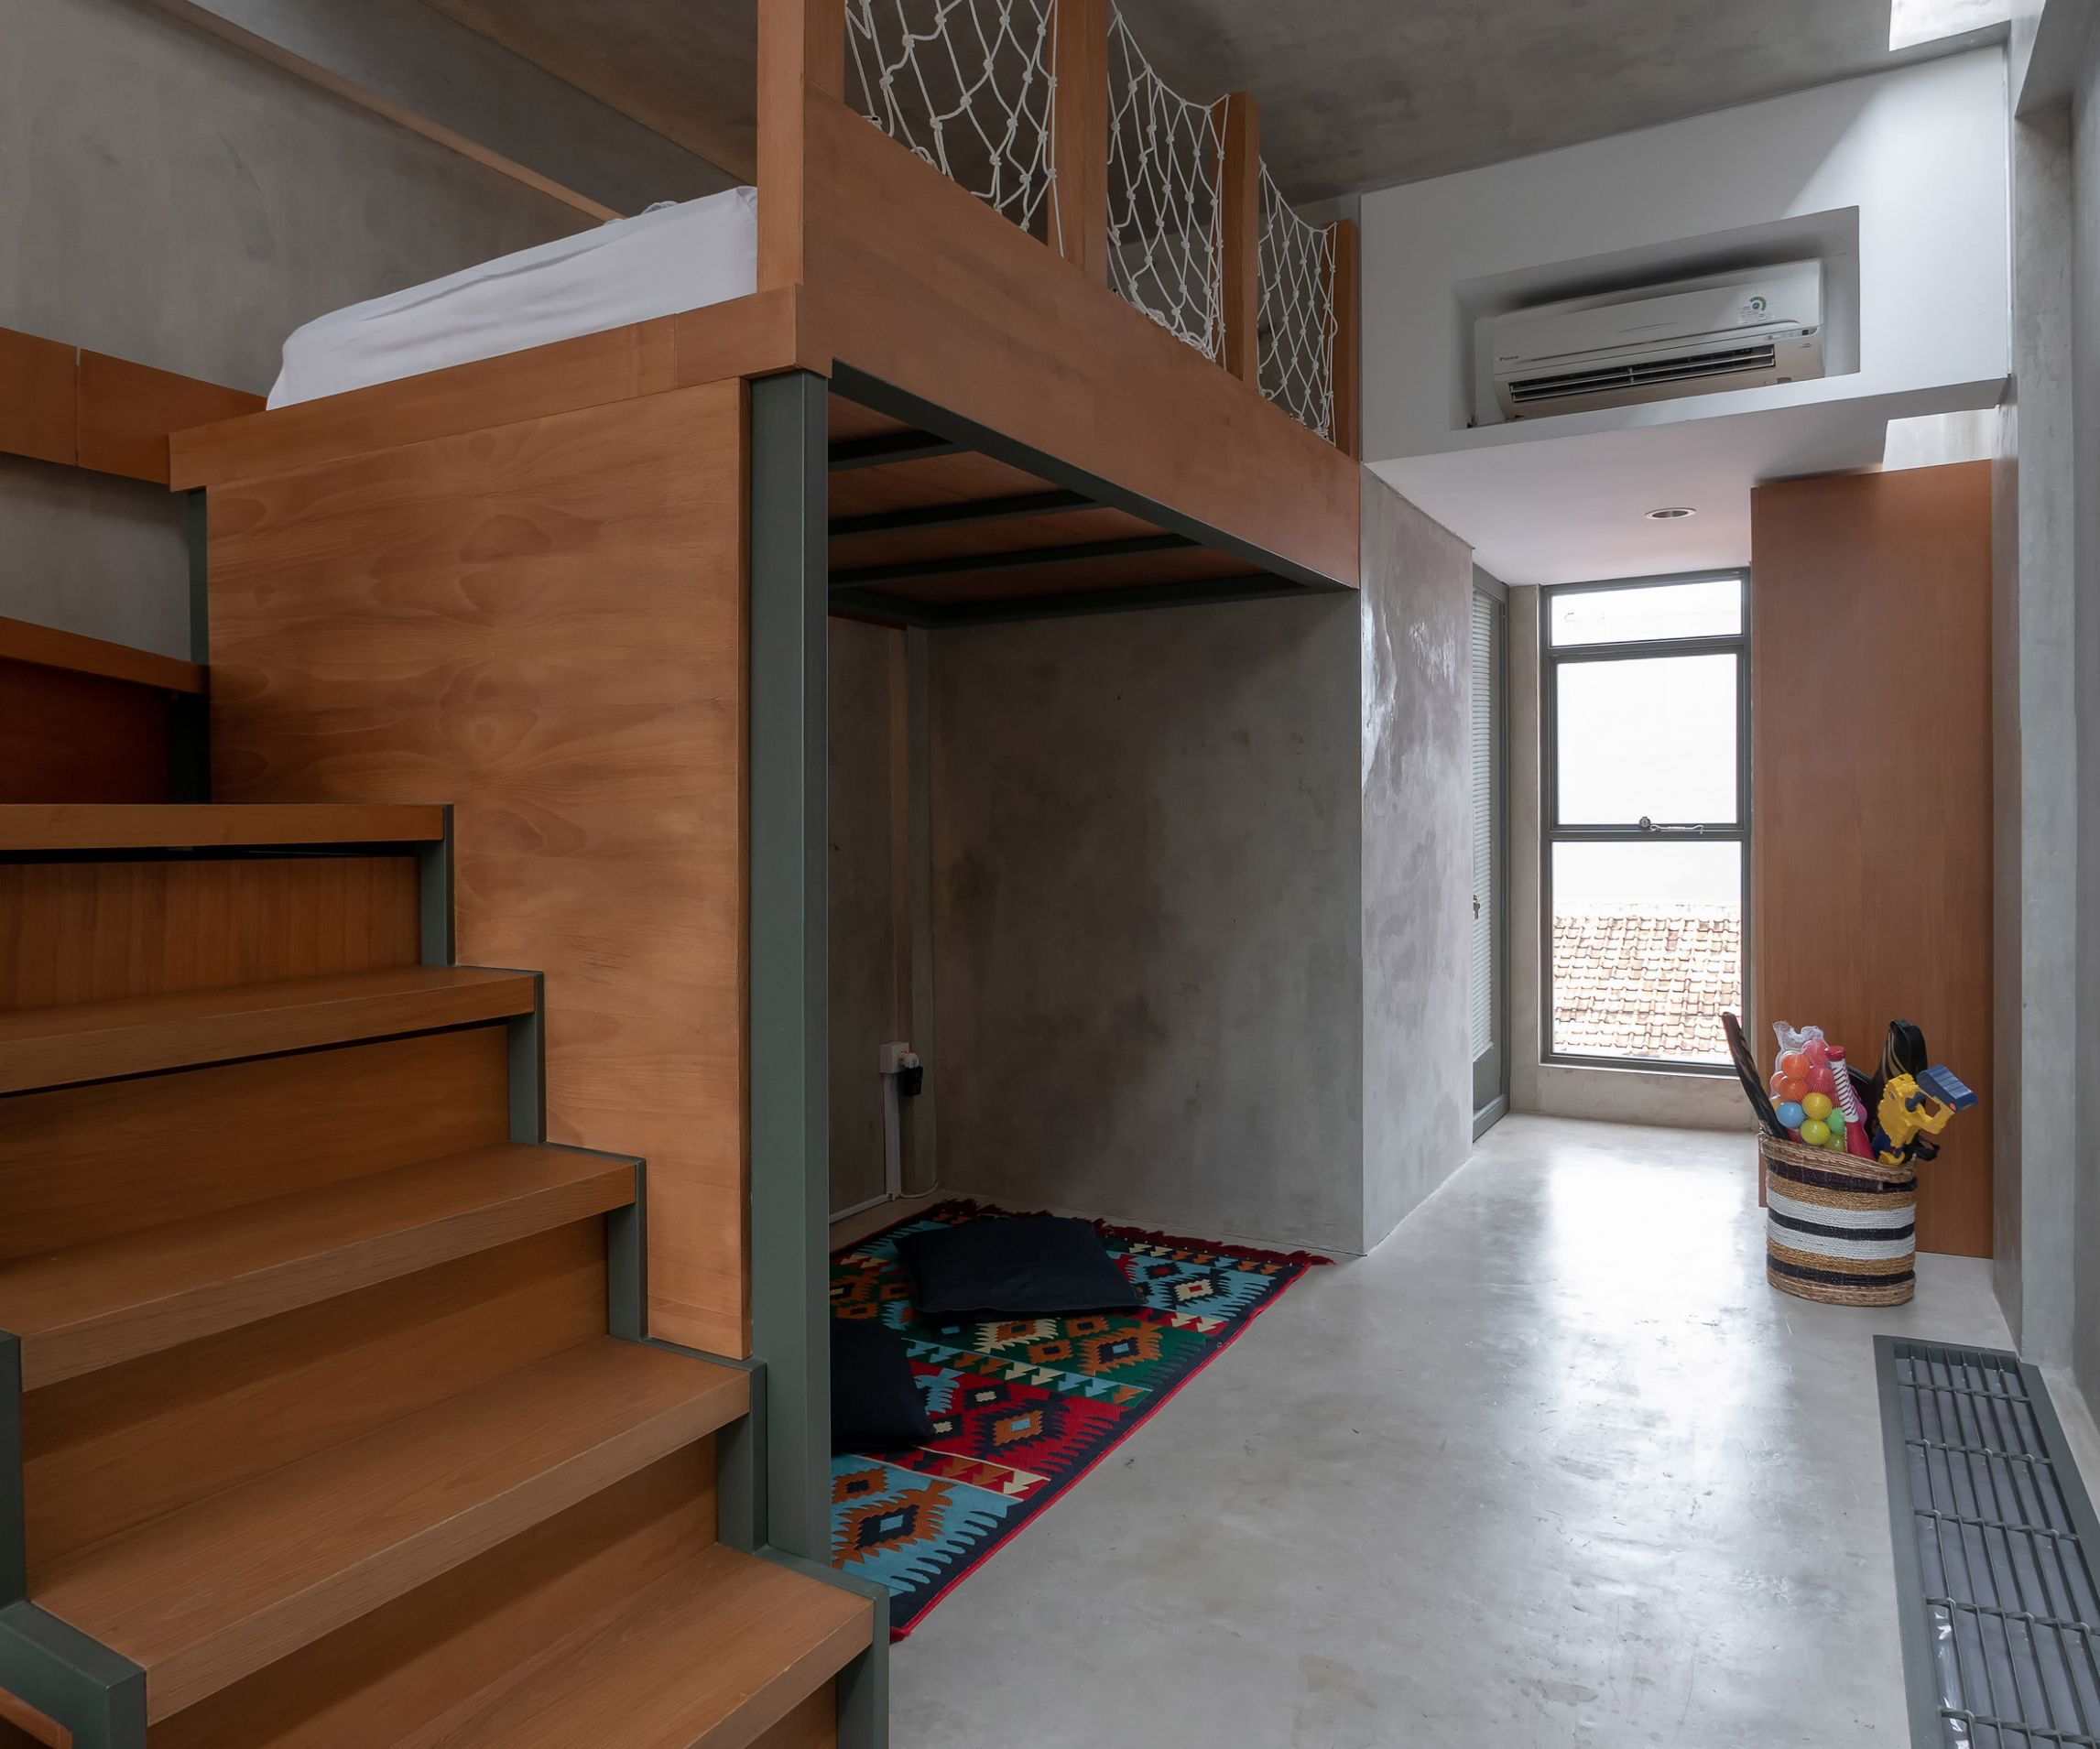 10,10 Millimetre House is a skinny house in Indonesia on a 10.10 ...